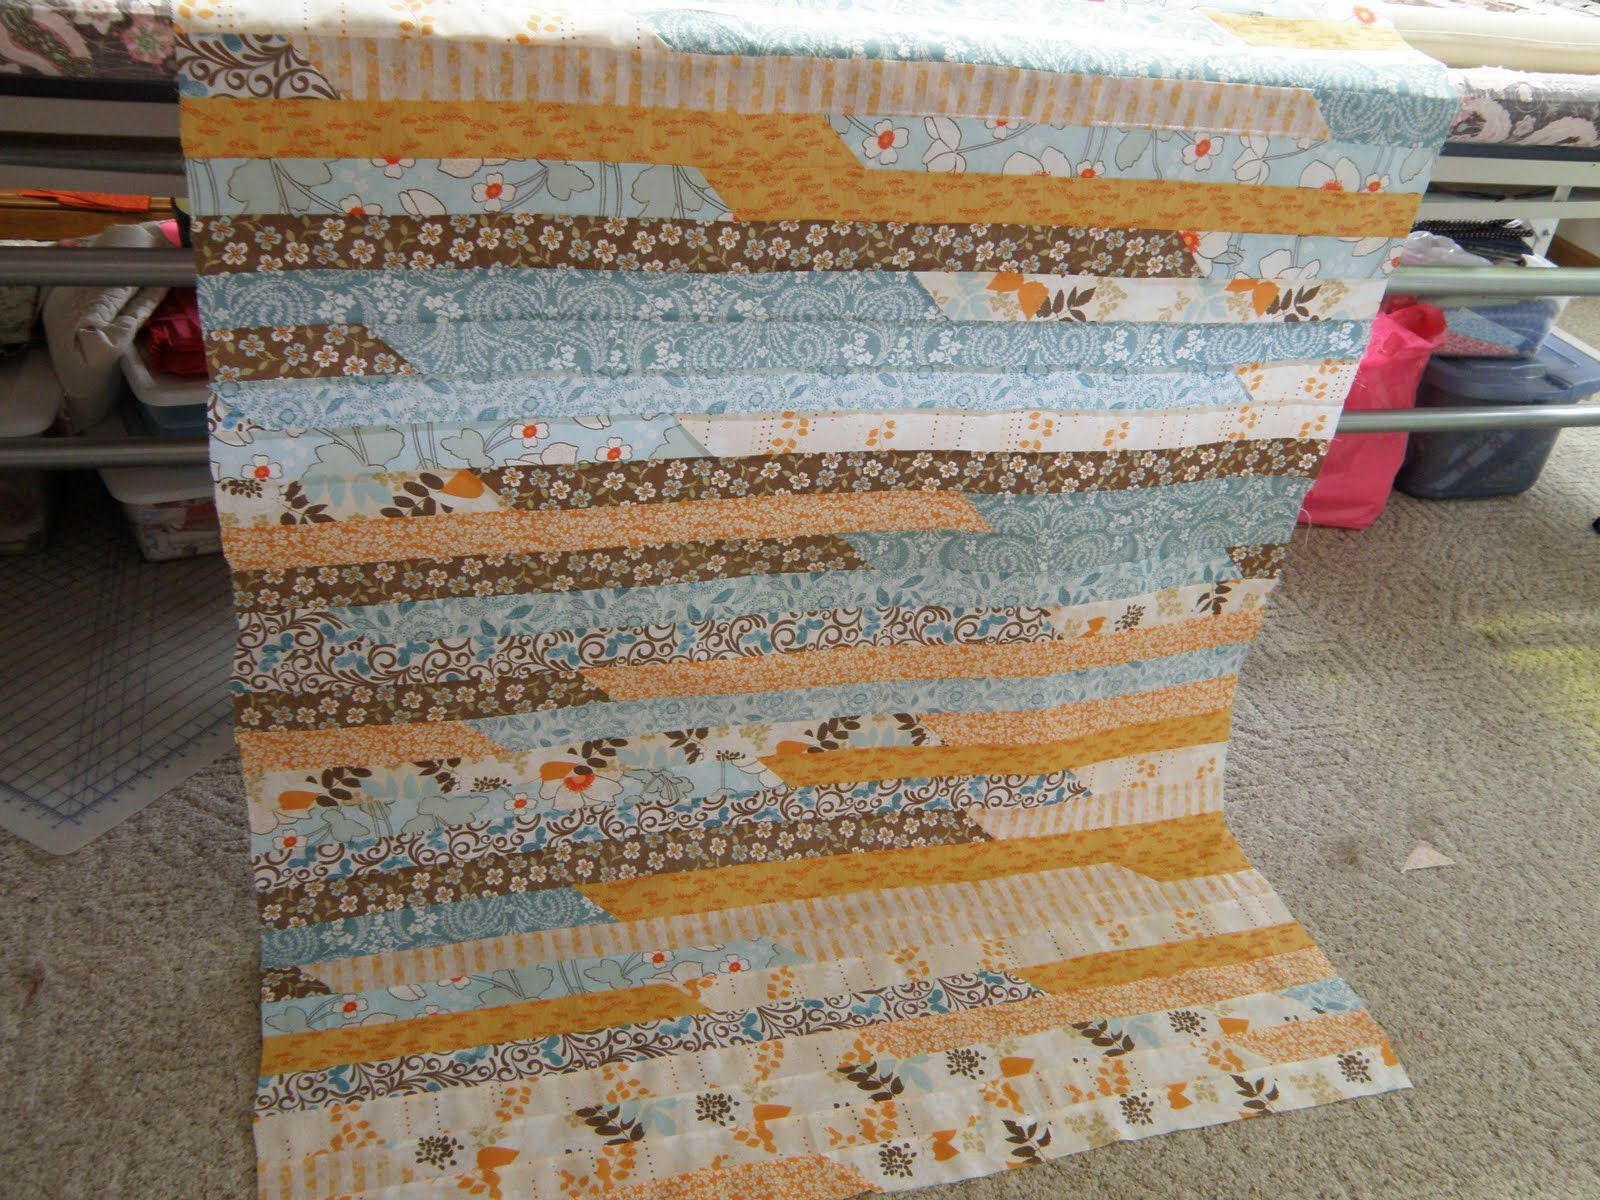 Jelly Roll 1600 | Quilts I Love | Pinterest | Jelly roll race and ... : 1600 quilts - Adamdwight.com